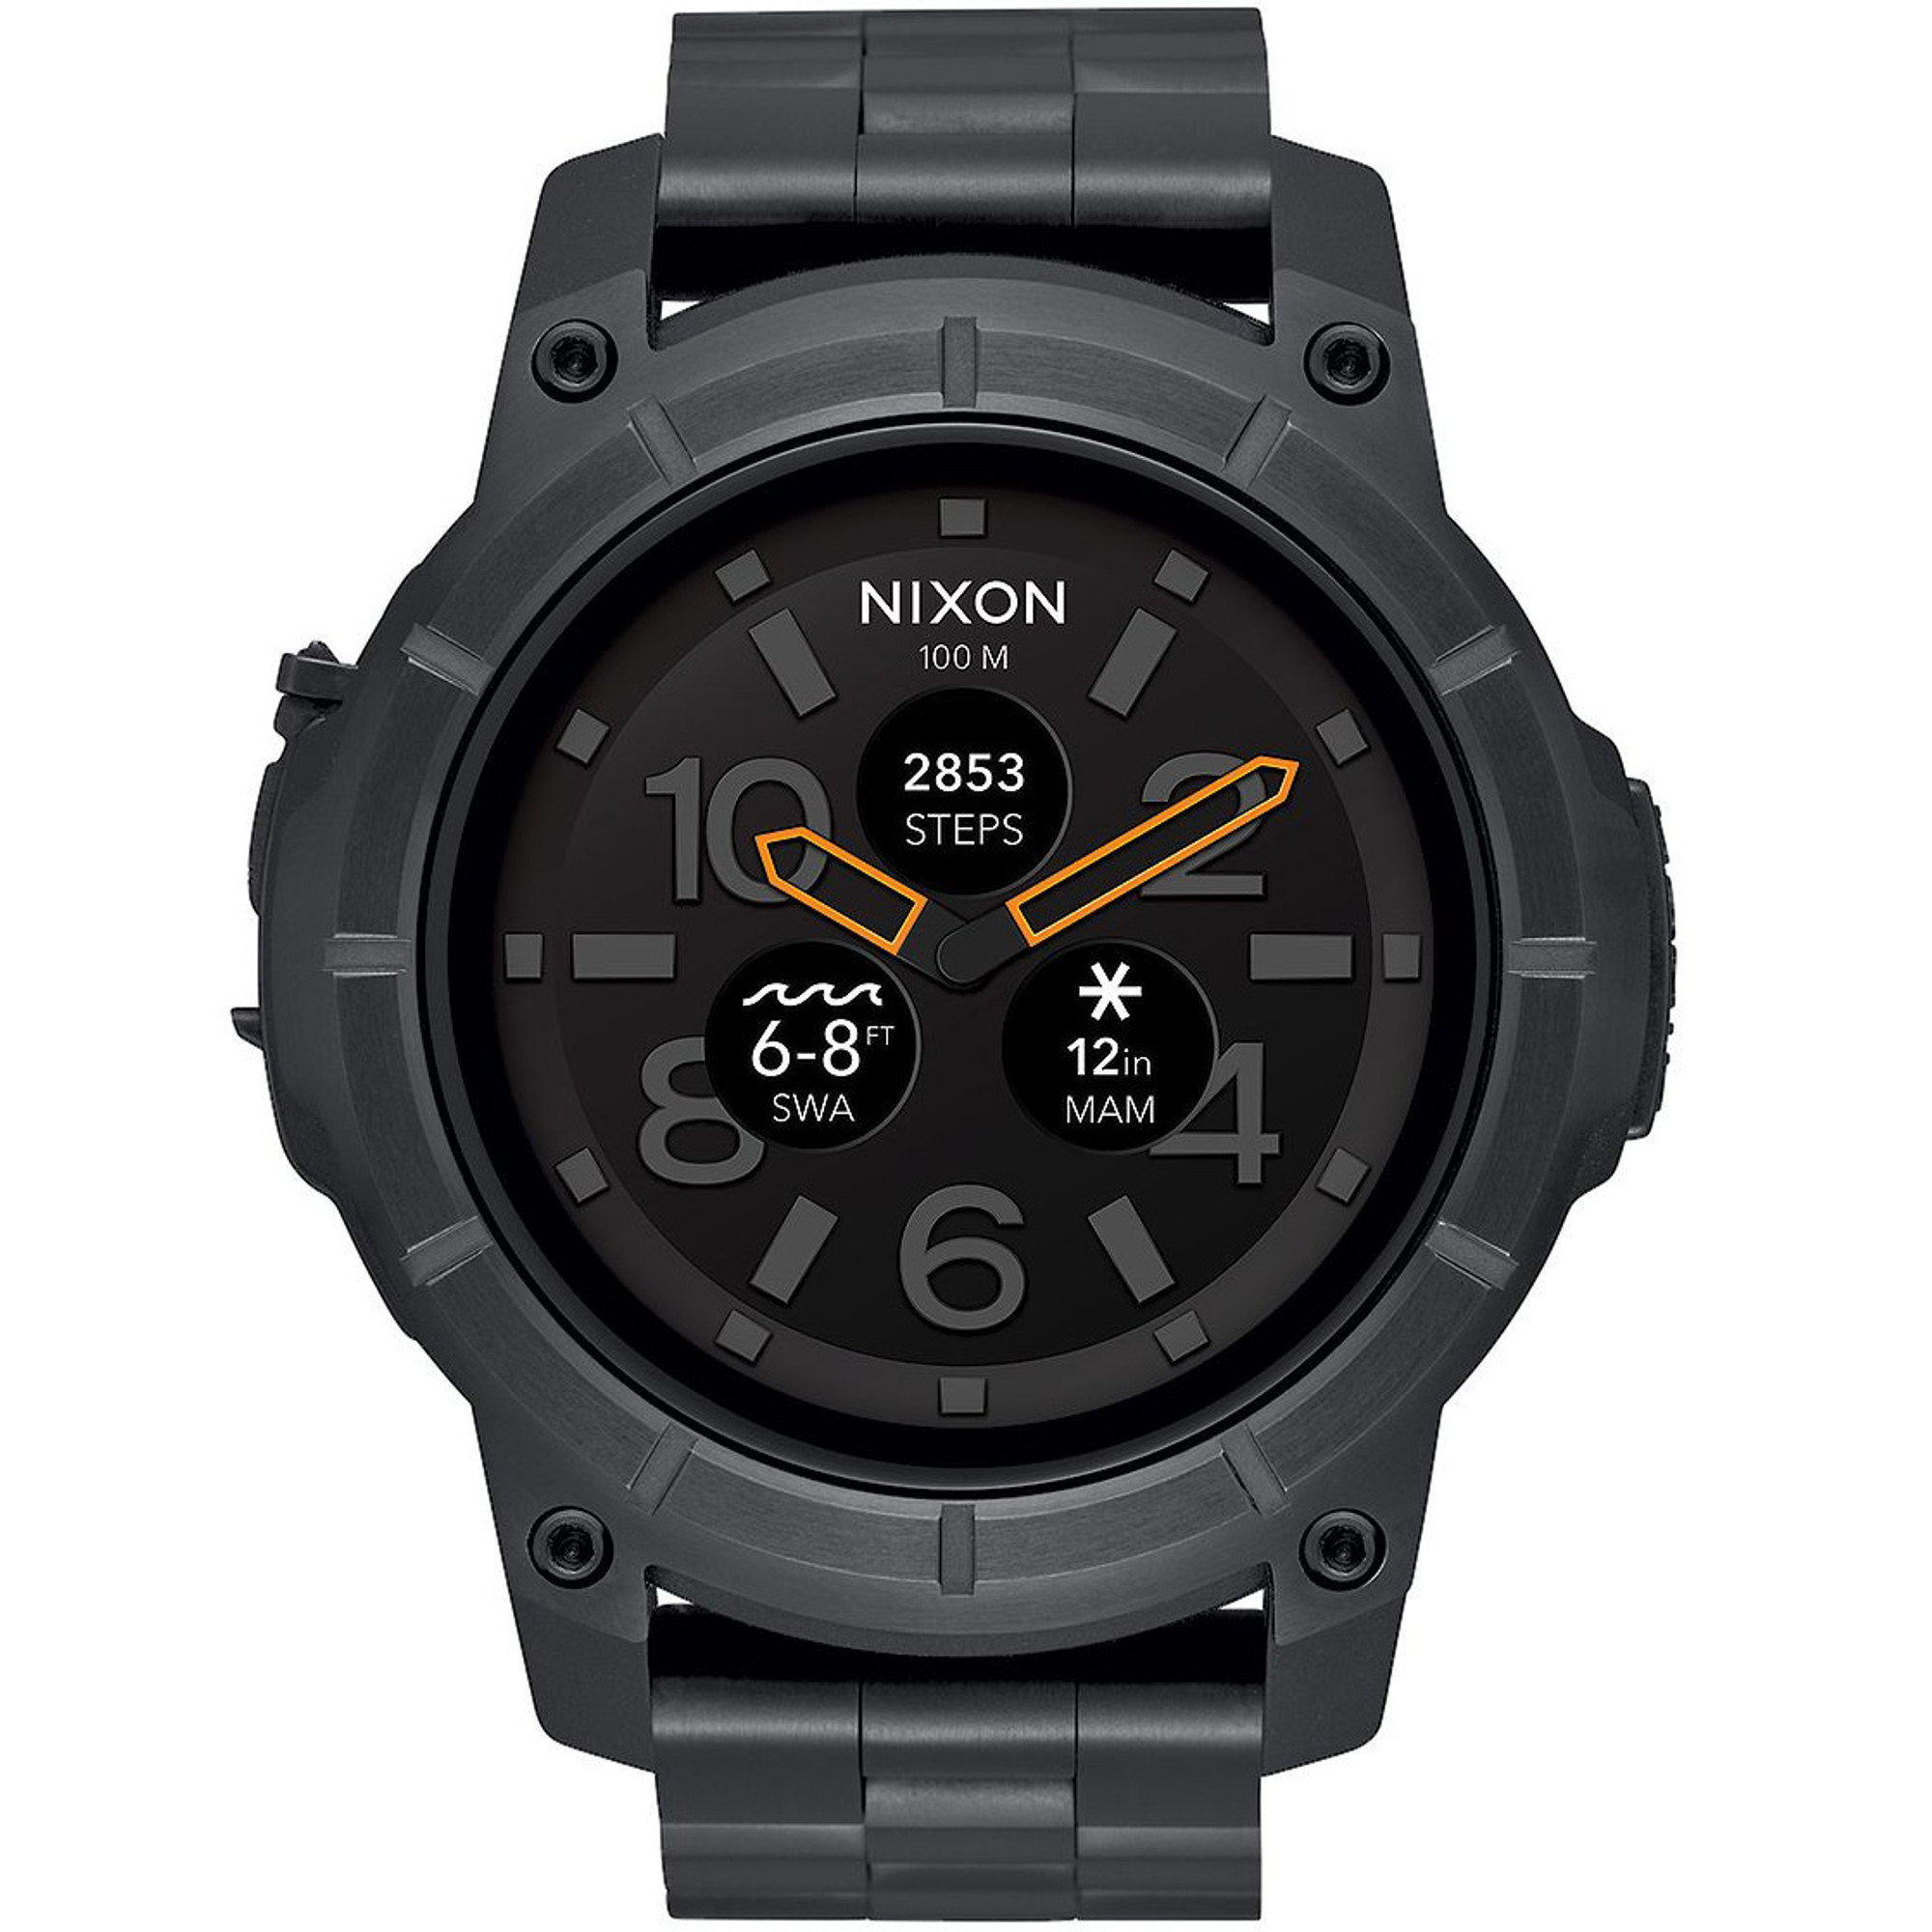 NIXON Mission SS Smartwatch A1216-000-00